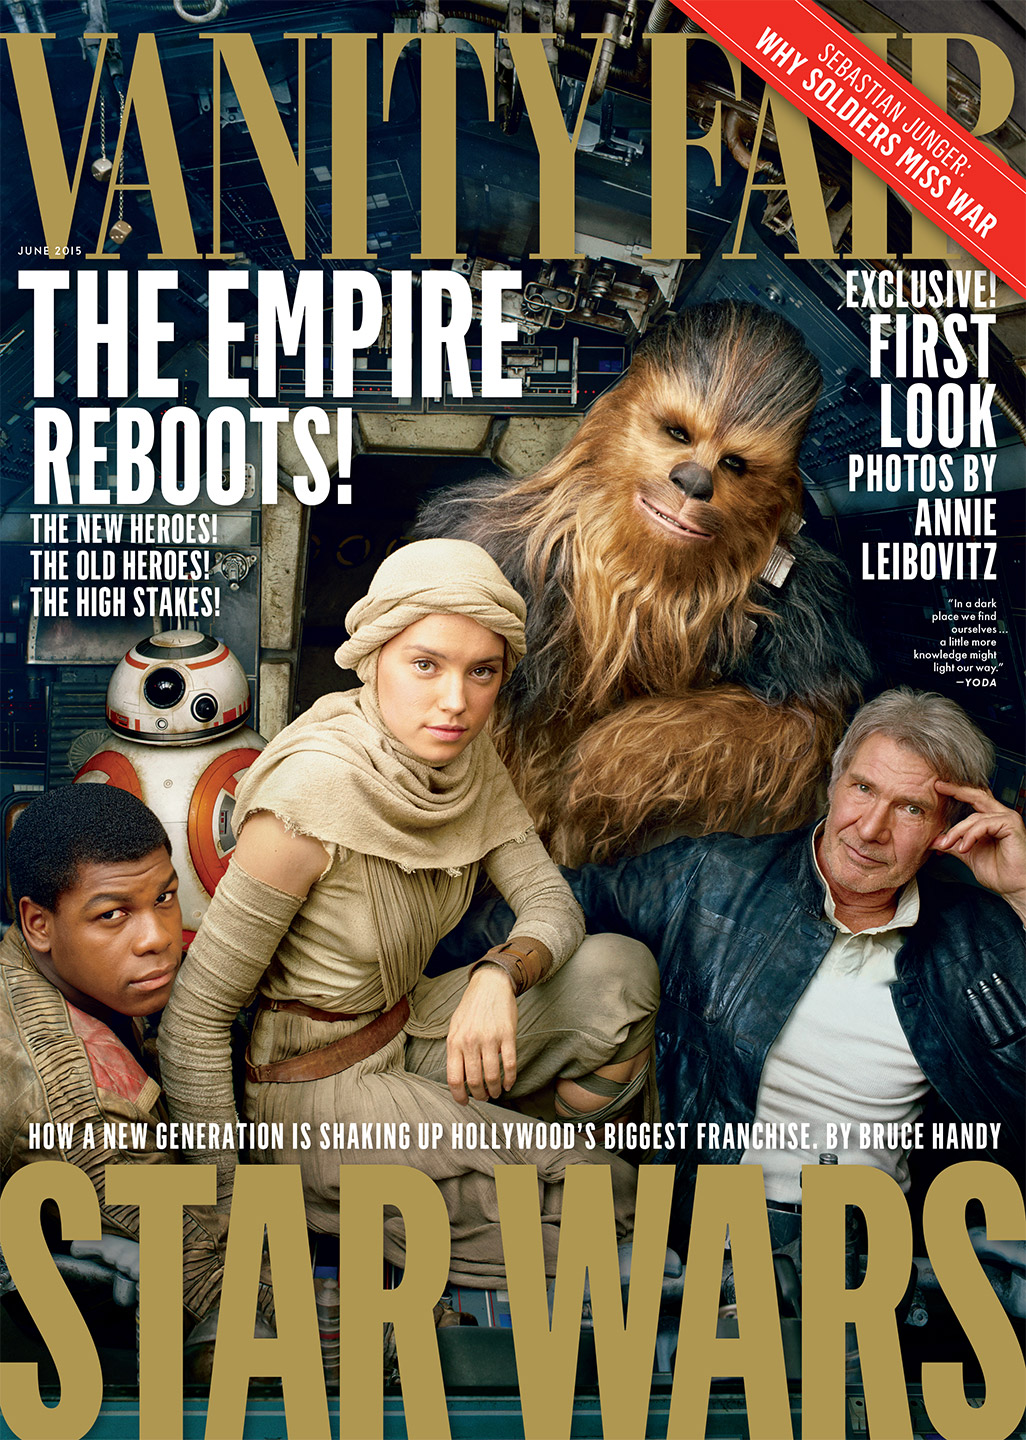 5543ca93db753b82389cbd6e_vanity-fair-star-wars